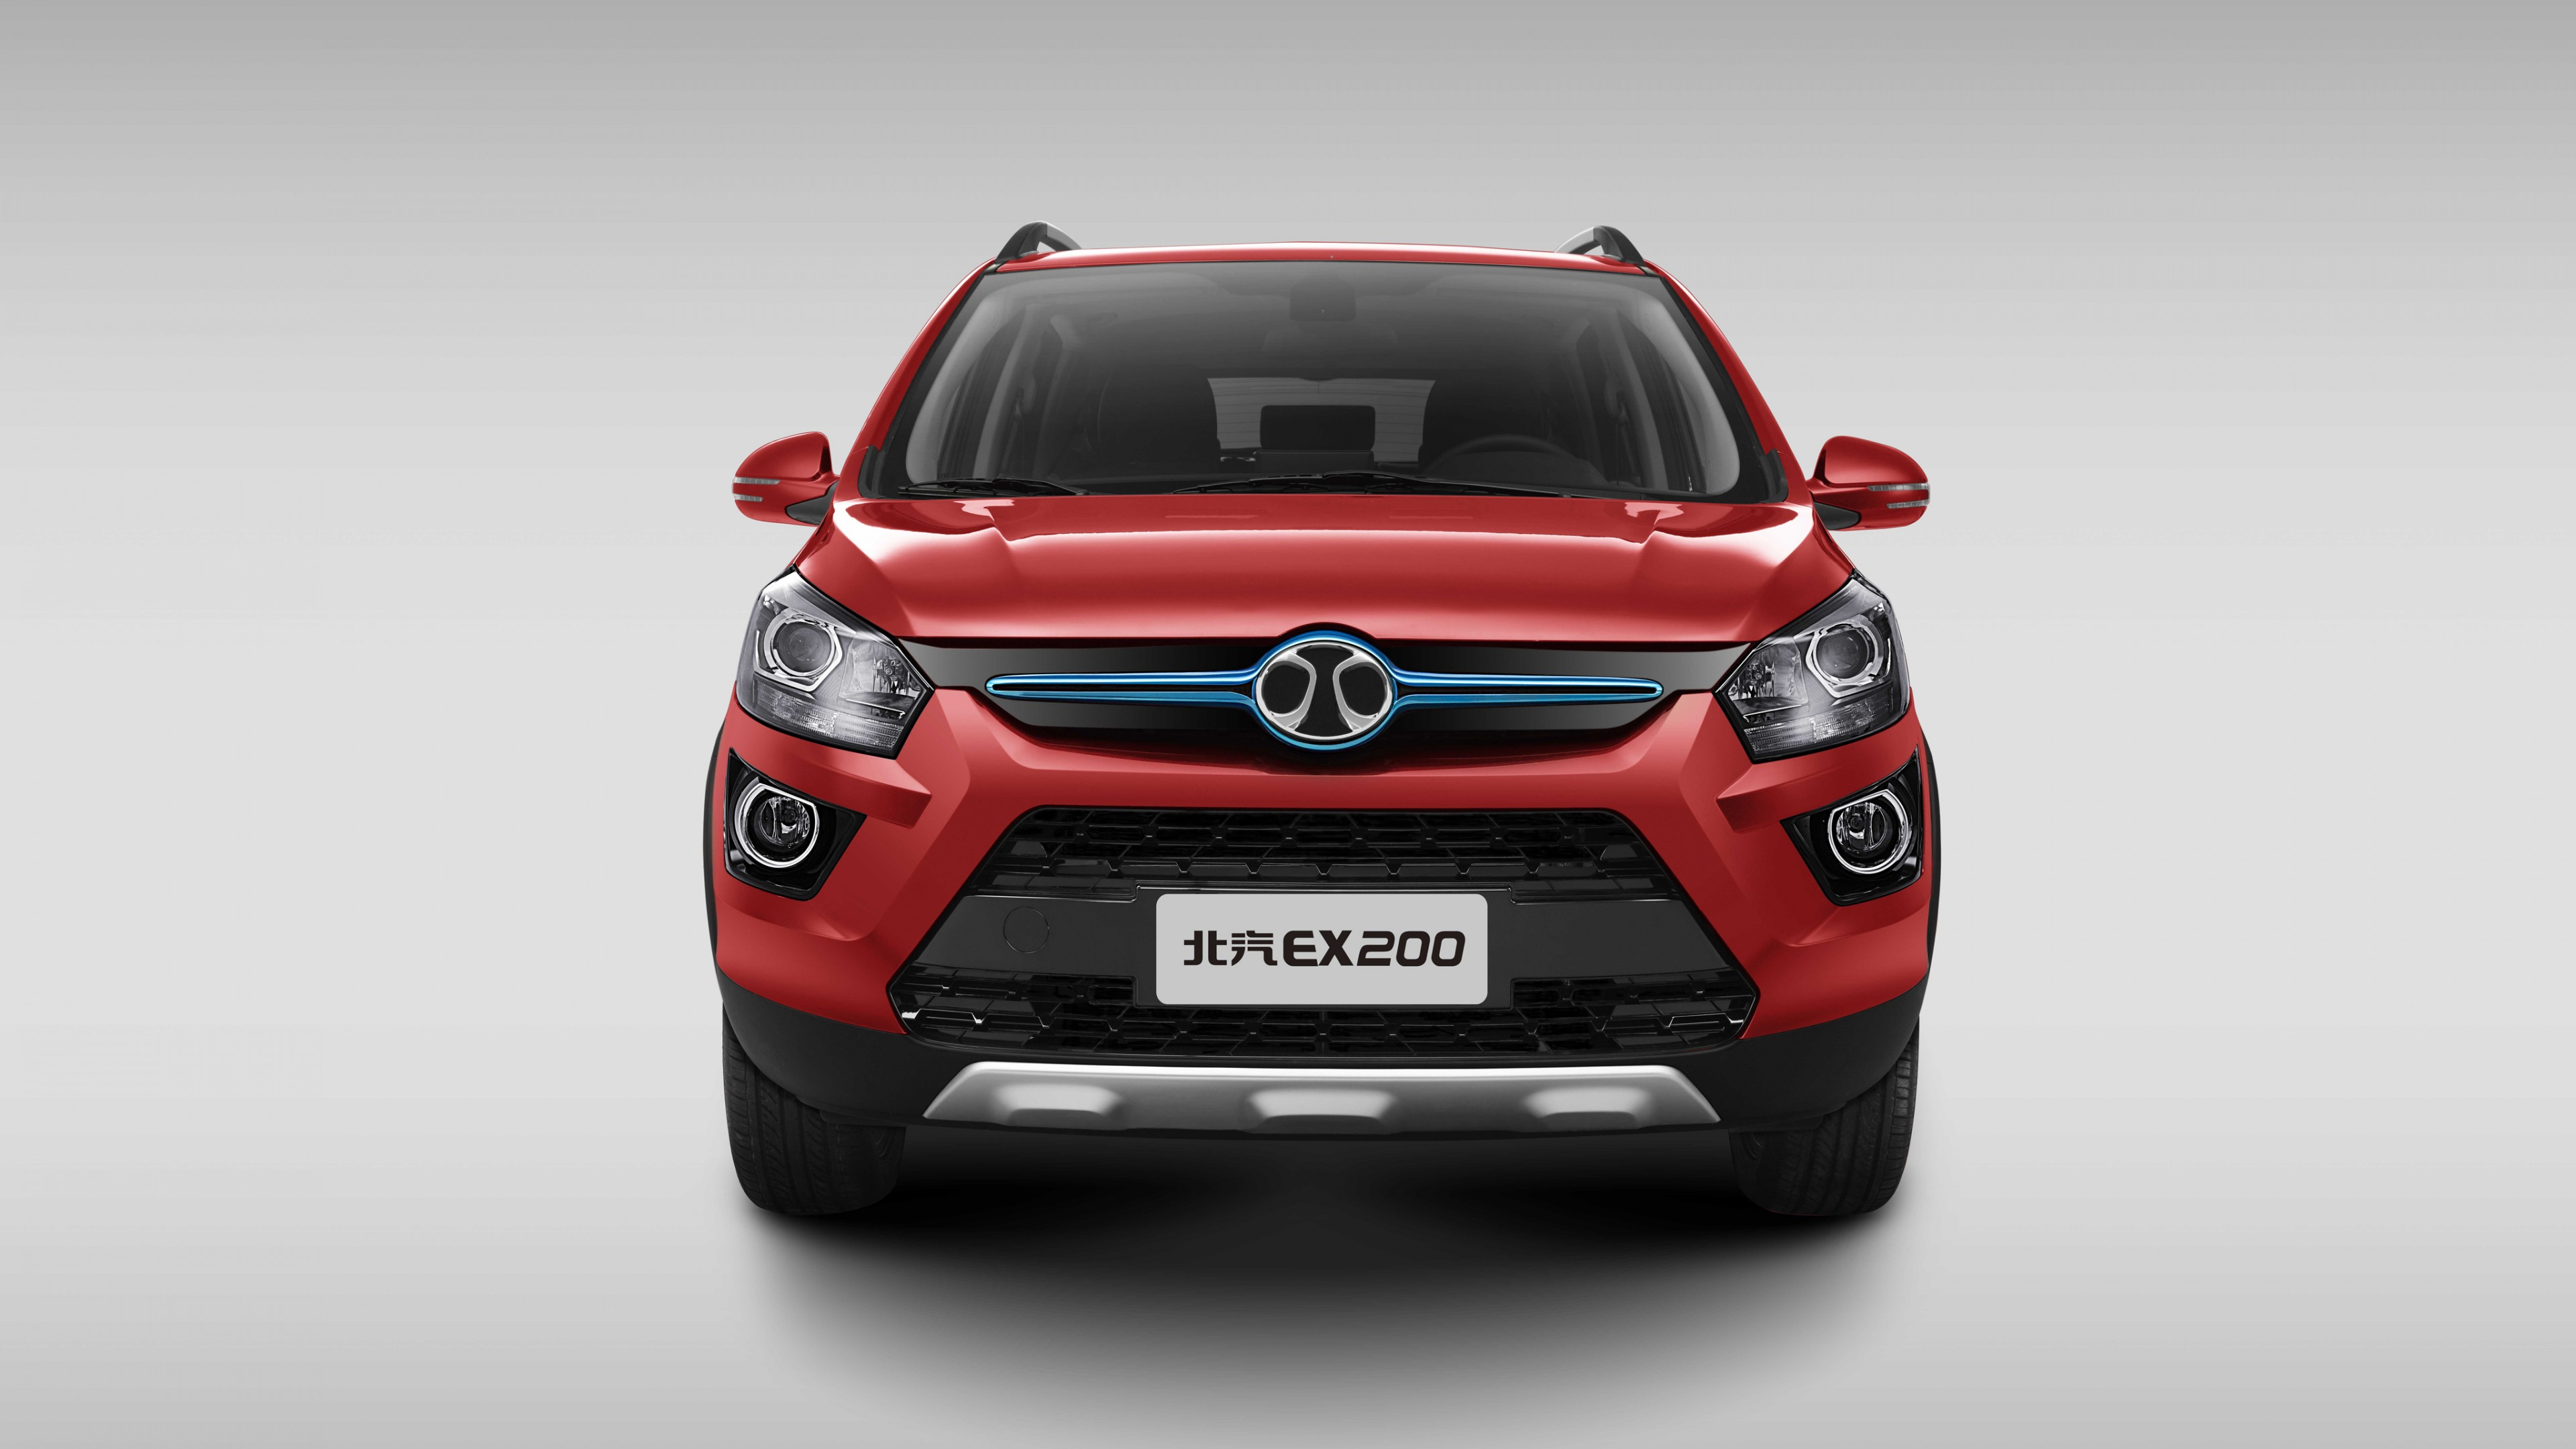 wallpaper senova  electric cars crossover red cars bikes